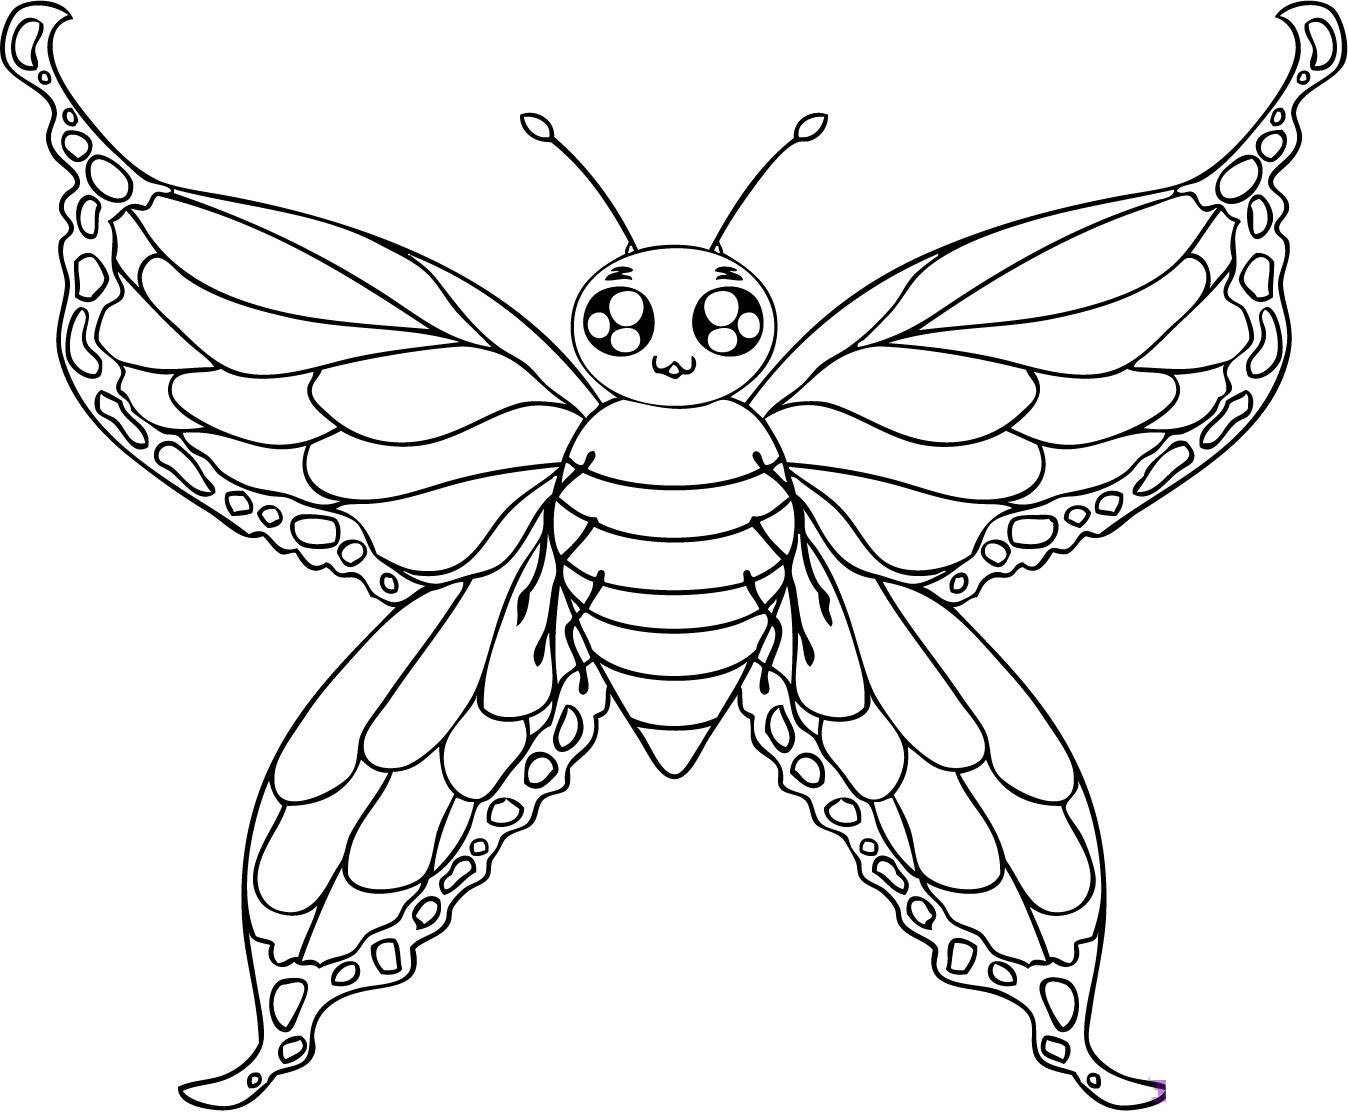 butterfly coloring pages for kids to print - Coloring Pages Butterfly Kids